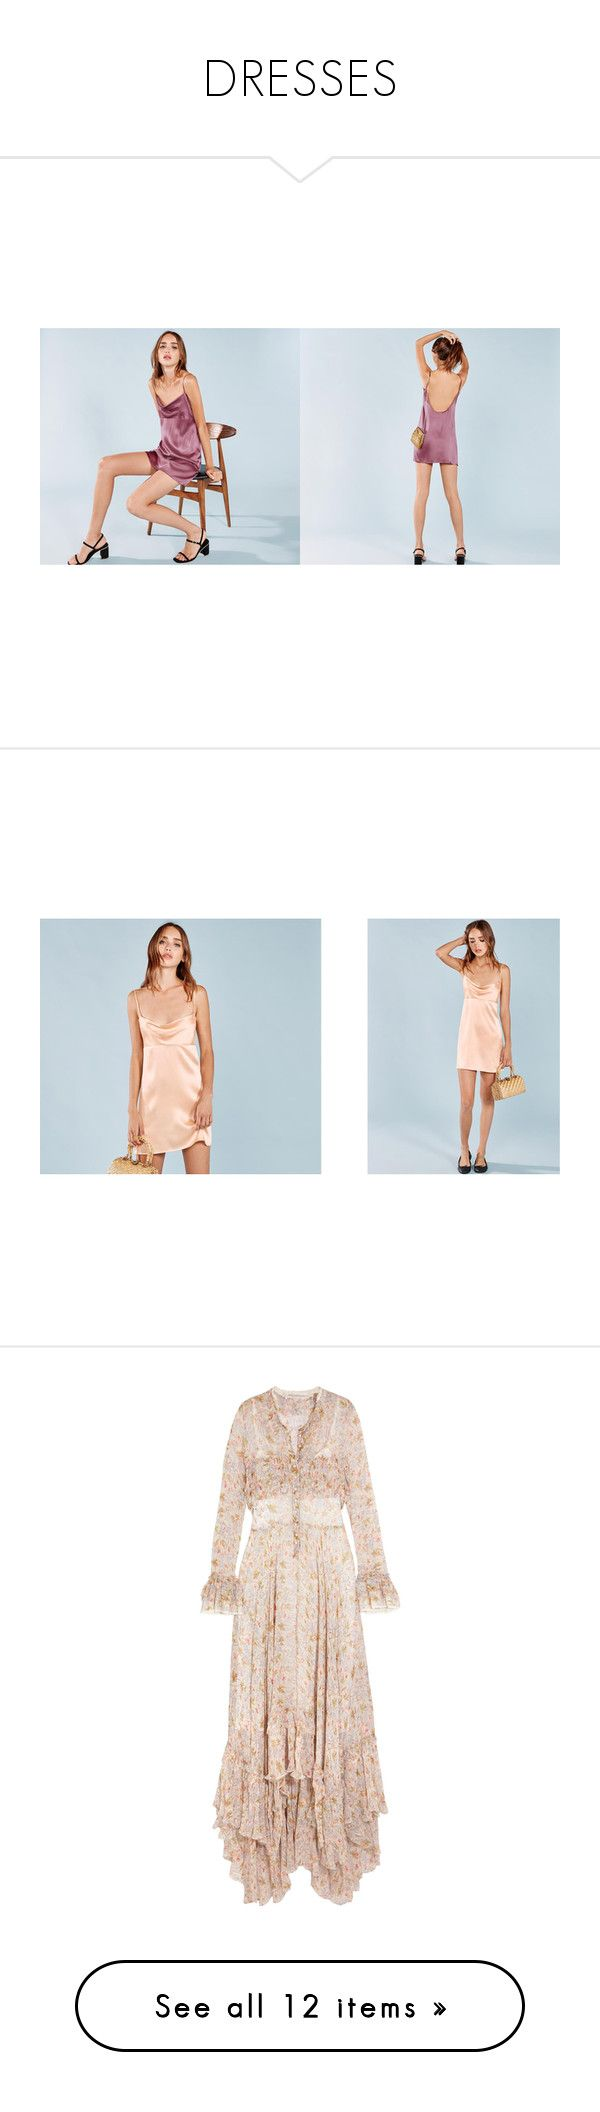 """""""DRESSES"""" by tish-nyu ❤ liked on Polyvore featuring dresses, plum dresses, cowl neck dress, blue color dress, blue cowl neck dress, scoop back dress, tight fitting dresses, blue dress, cream and high low maxi dress"""